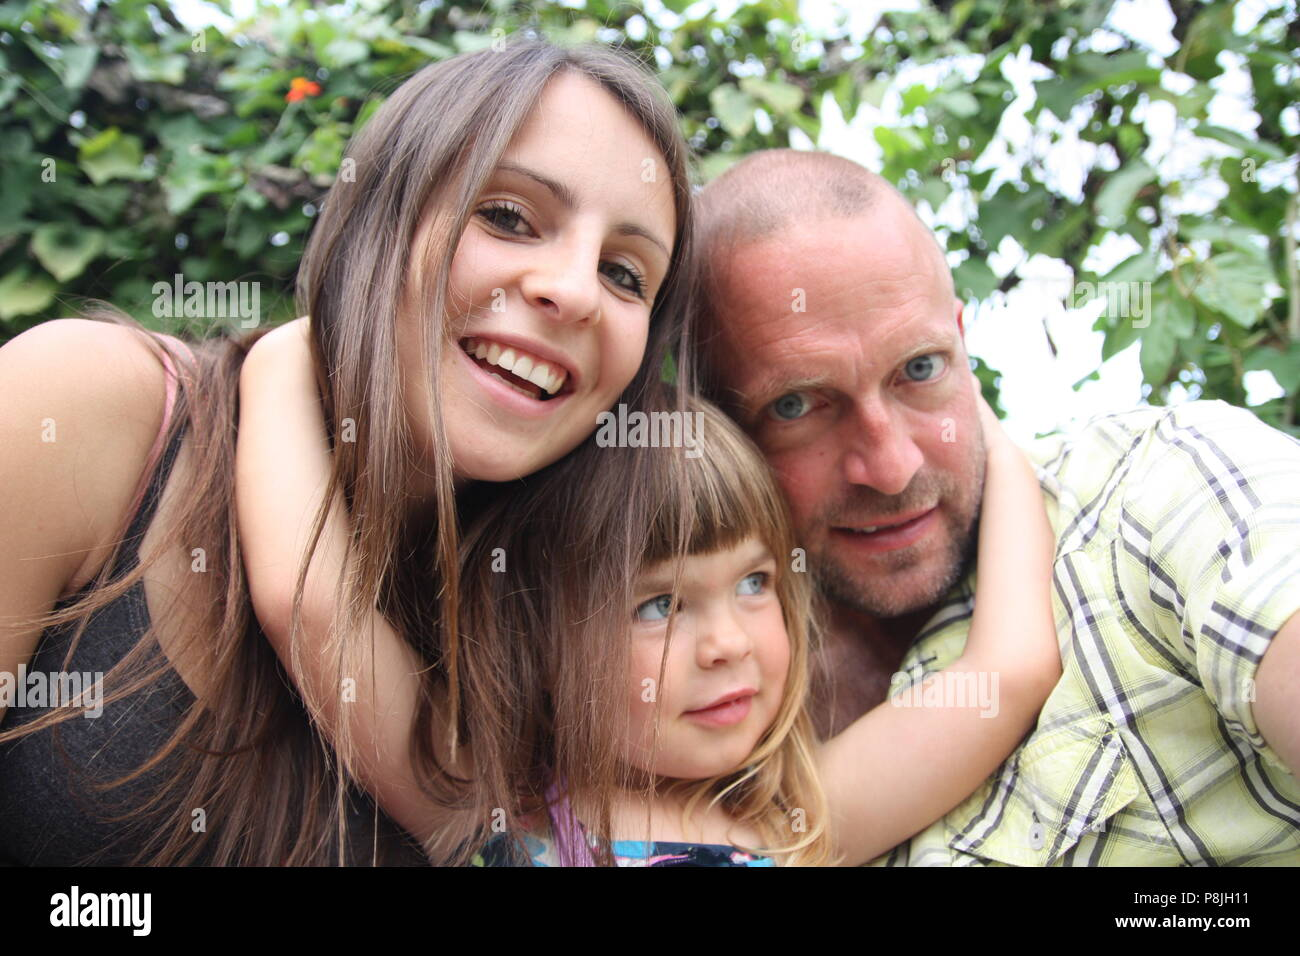 Beautiful happy family cuddling selfie picture long dark hair couple with toddler - Stock Image